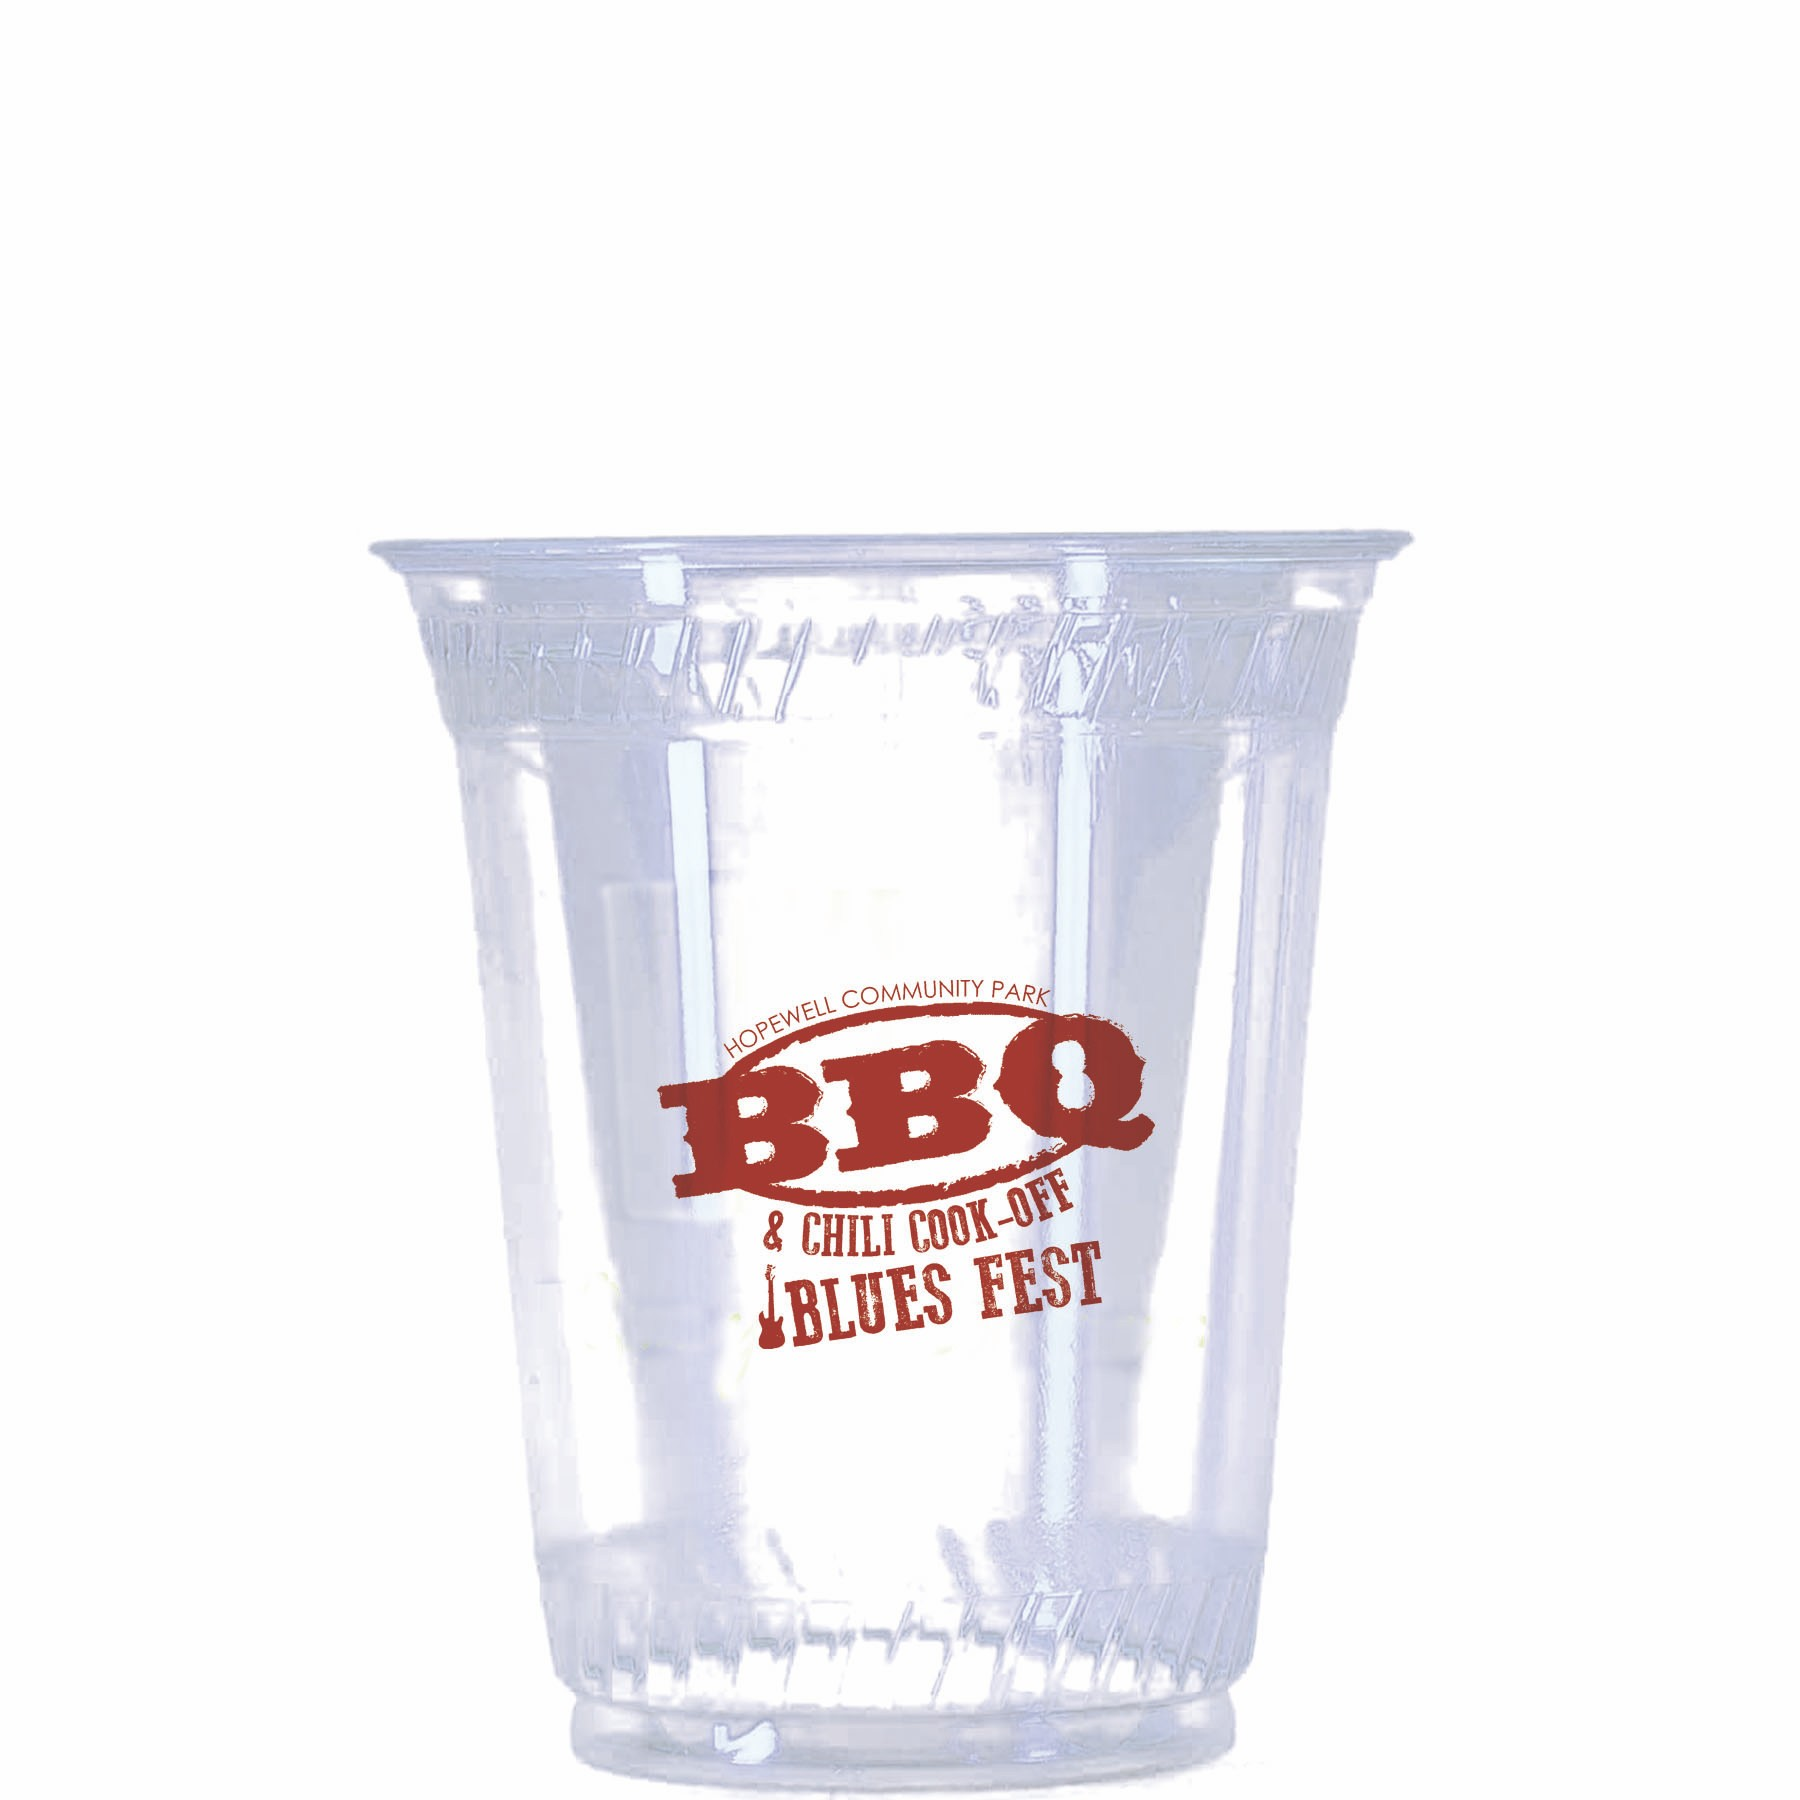 12 Oz. Soft Sided Cups - The 500 Line